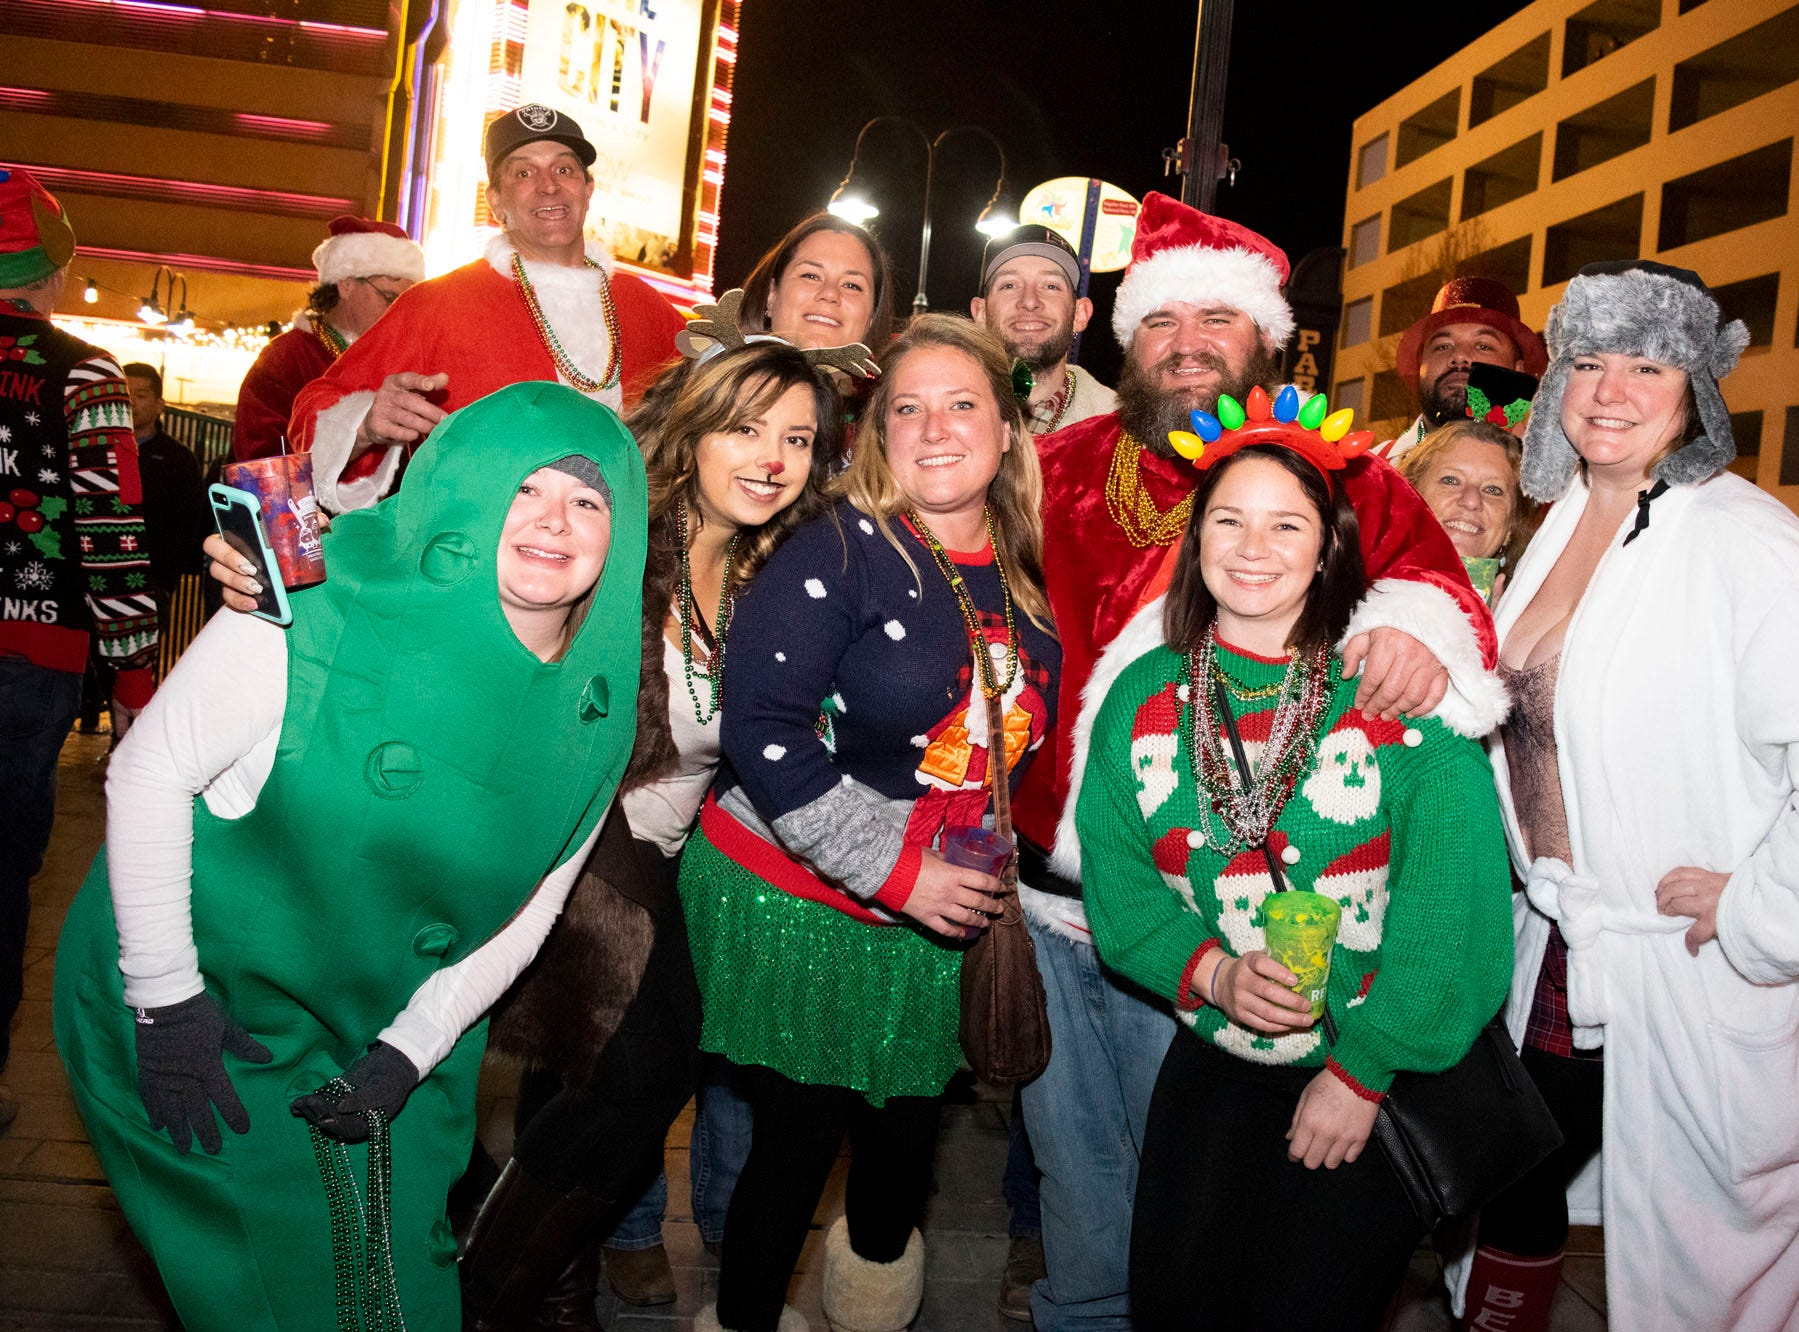 Elves, Christmas trees, Grinches, and yes, Santas, all get merry at the Reno Santa Pub Crawl on Saturday, Dec. 15, 2018.